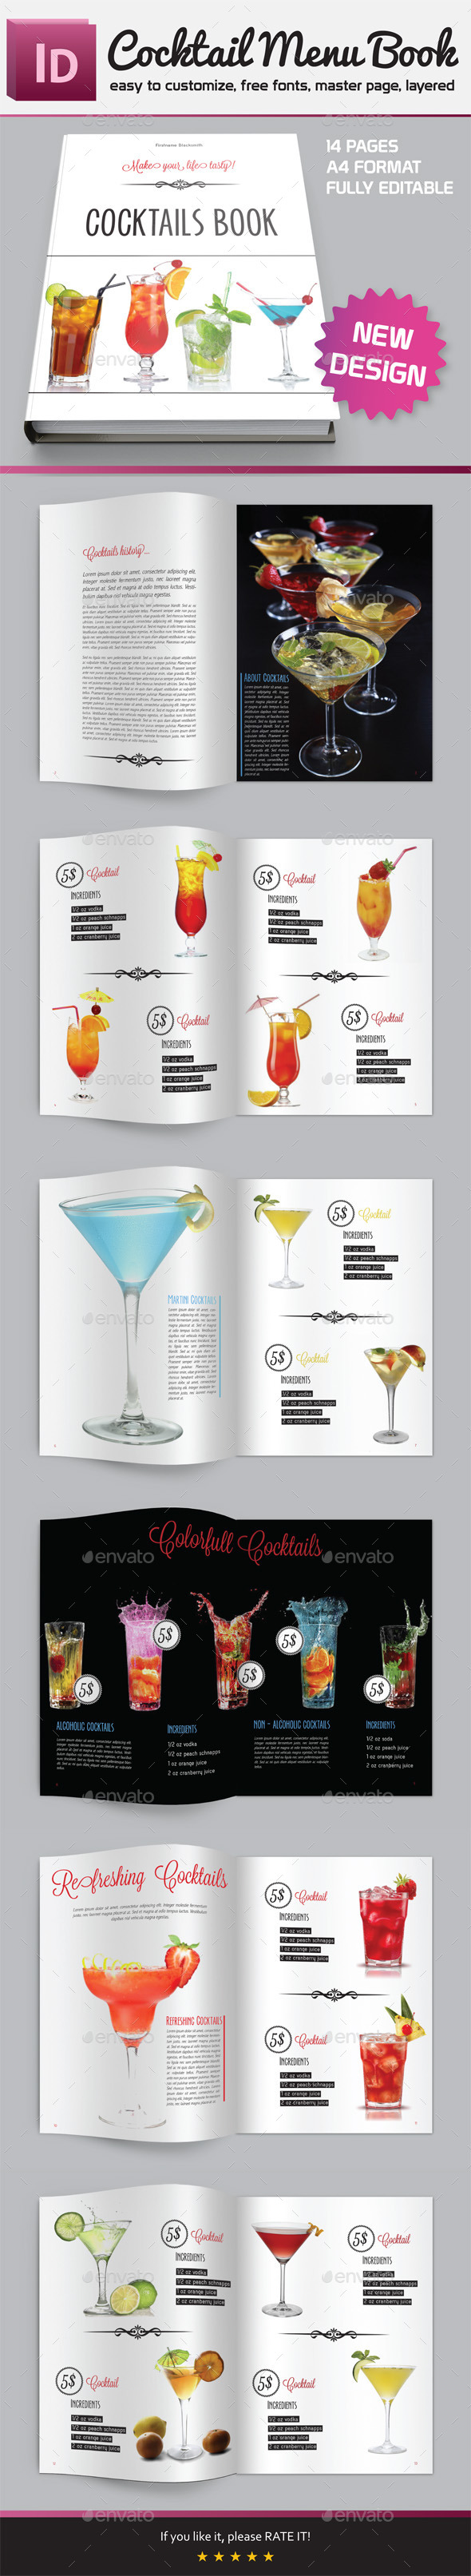 Cocktail Menu Book